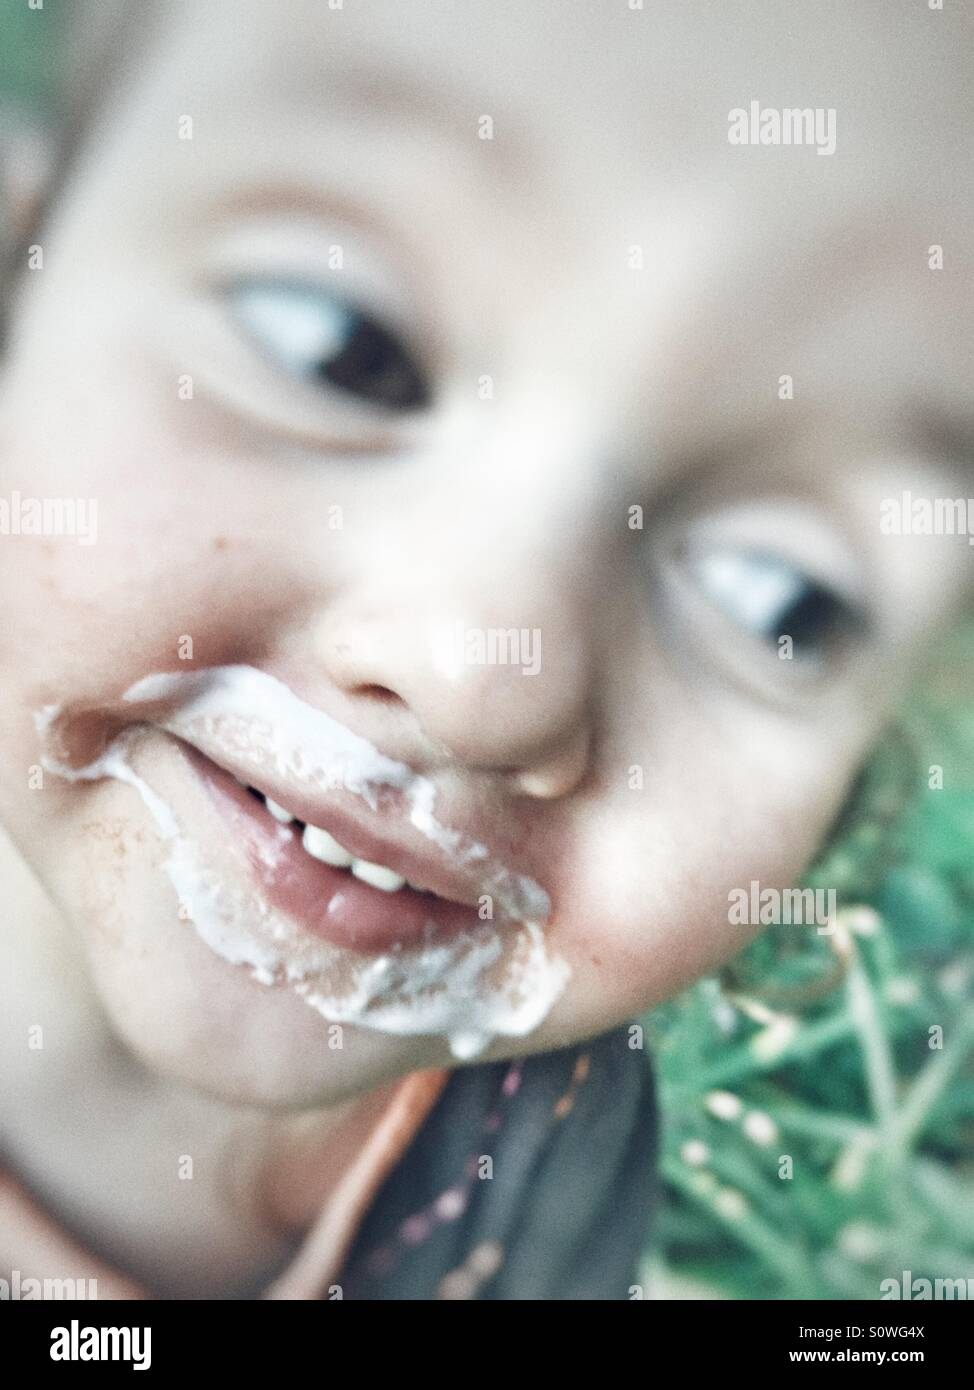 Ice cream mouth - Stock Image